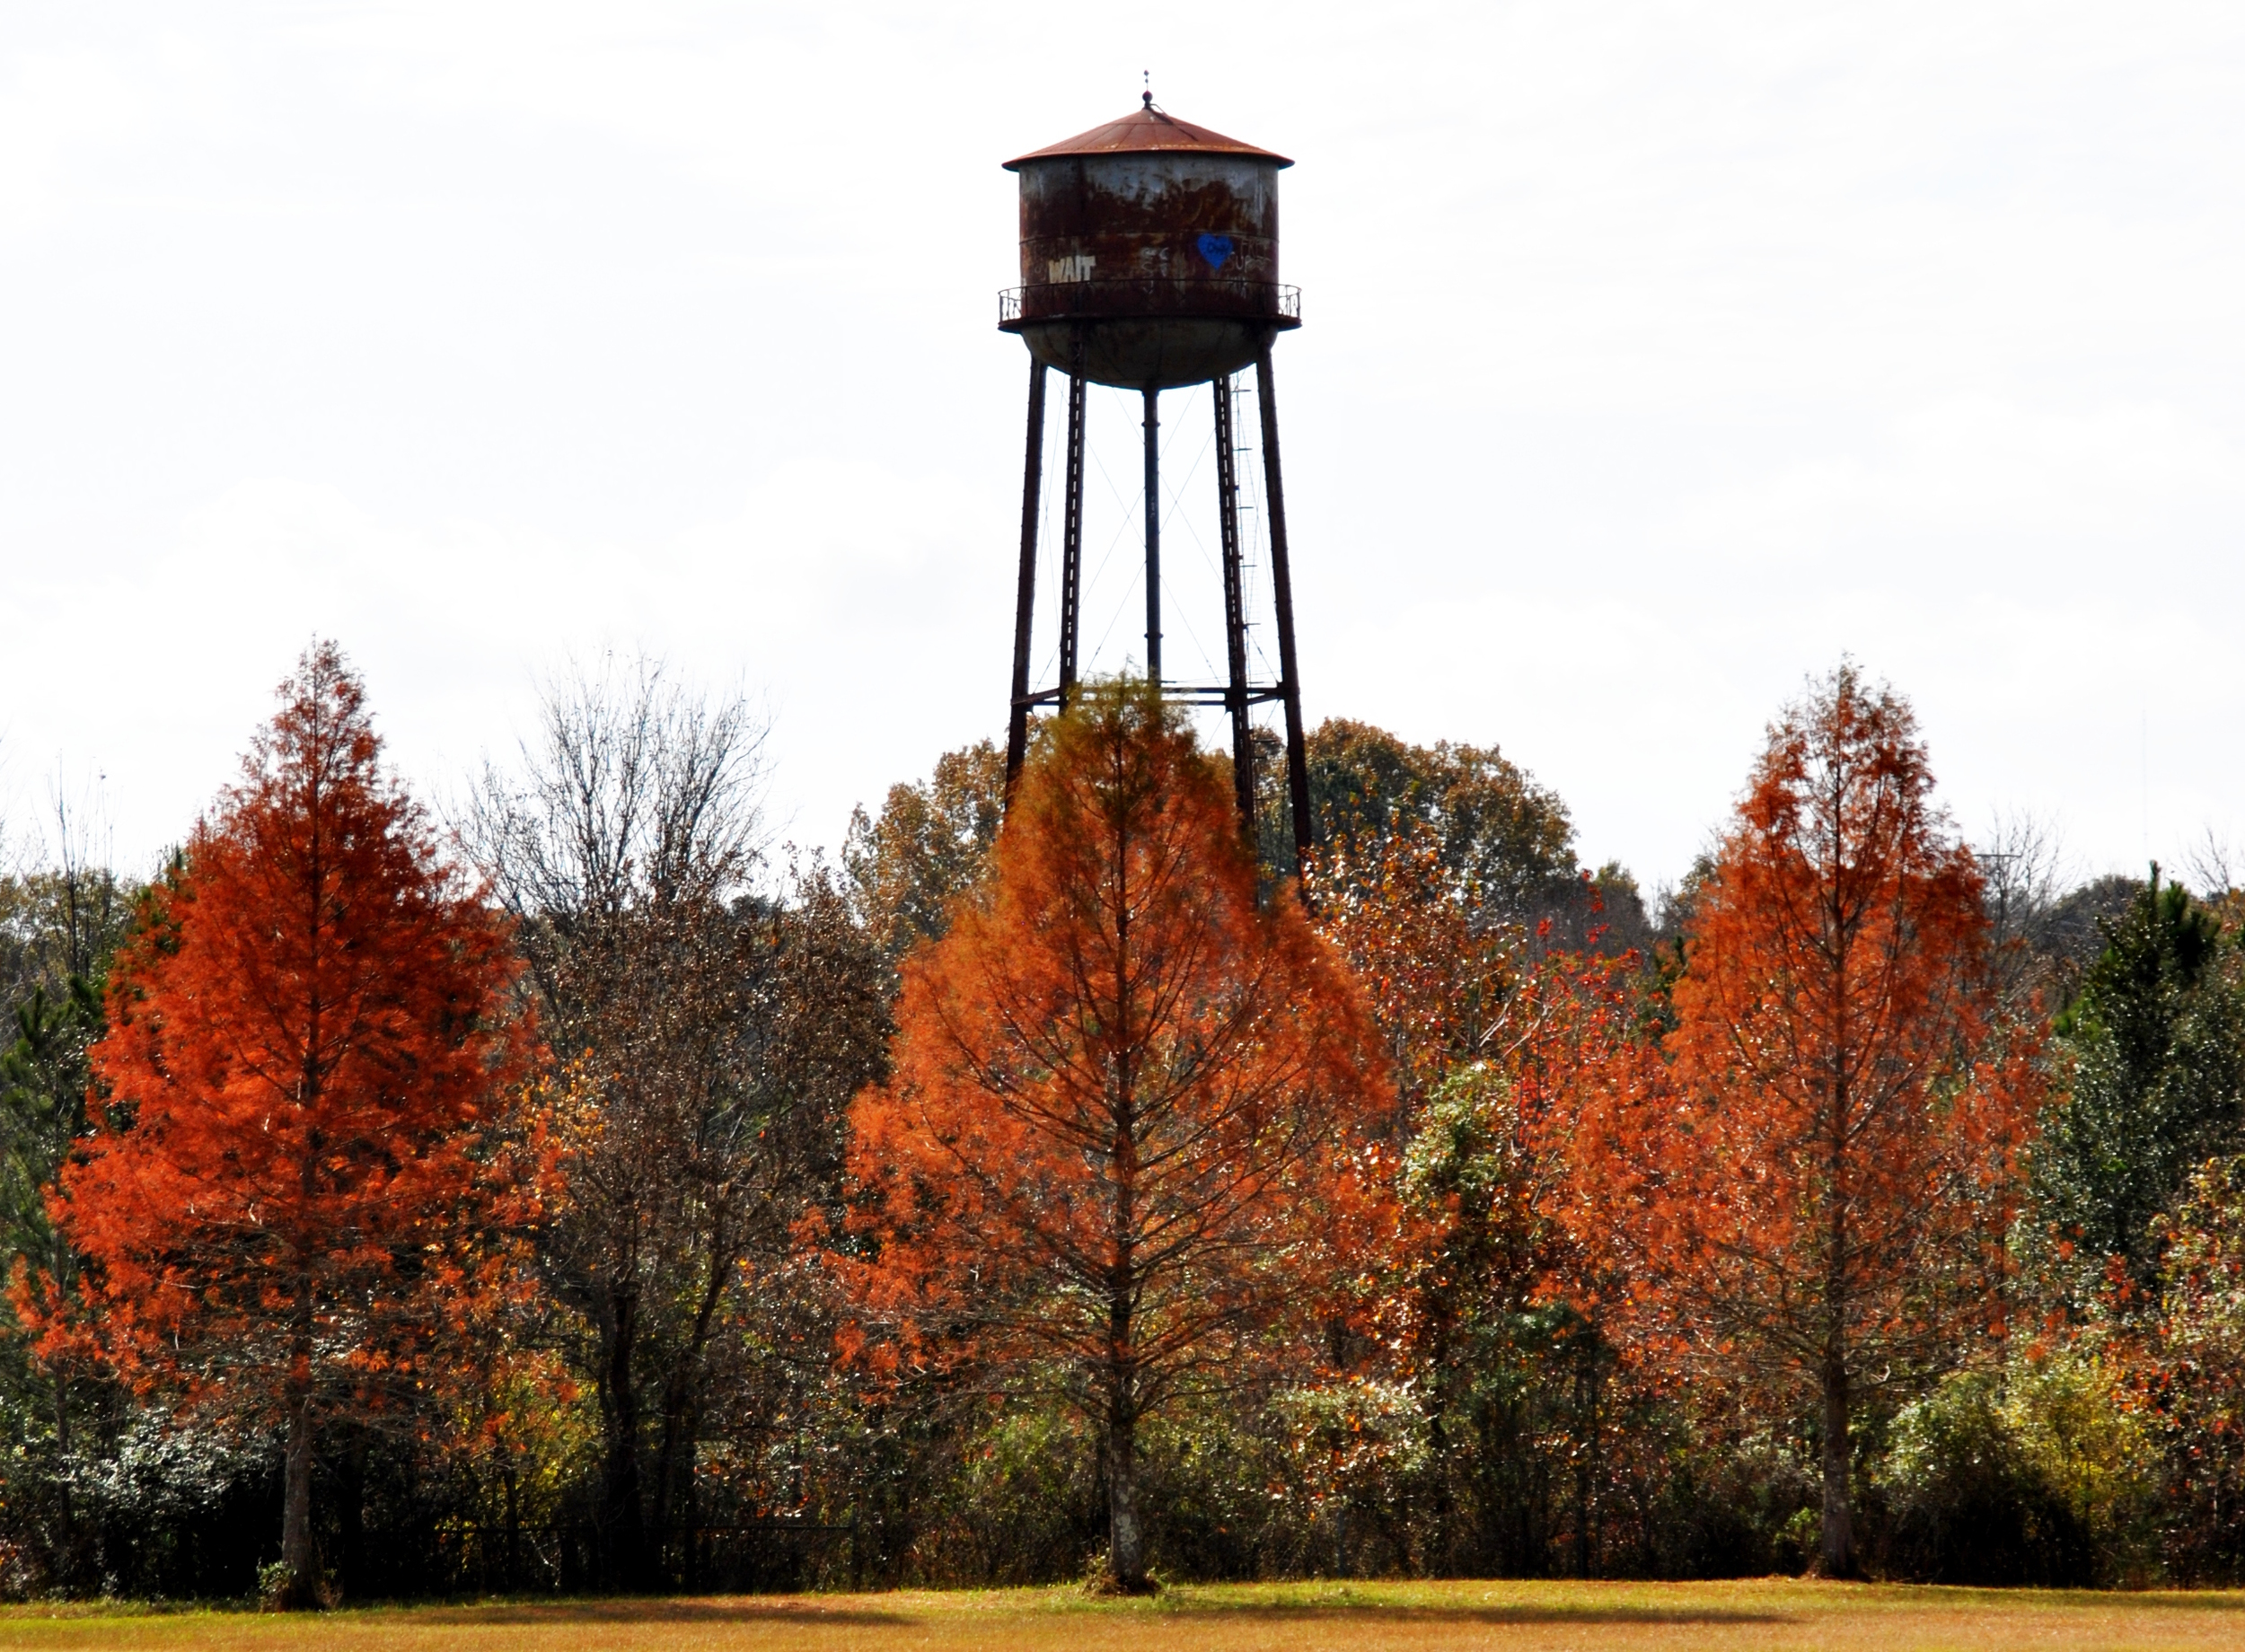 No, water tower. We no longer have to wait. Pearl River Flow is breaking this story wide open.